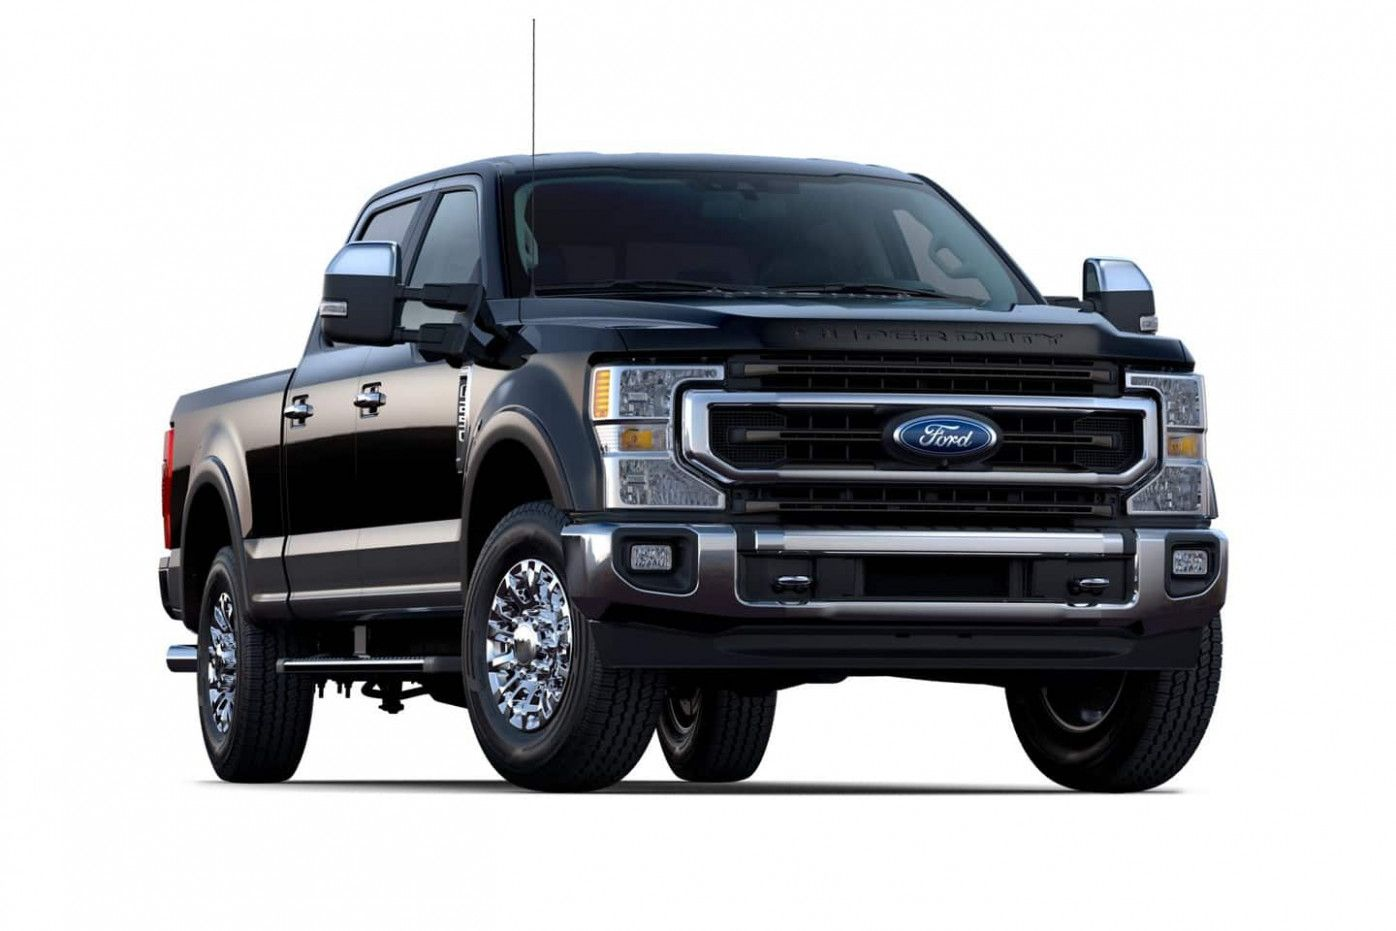 2020 Ford King Ranch F250 History In 2020 With Images Car